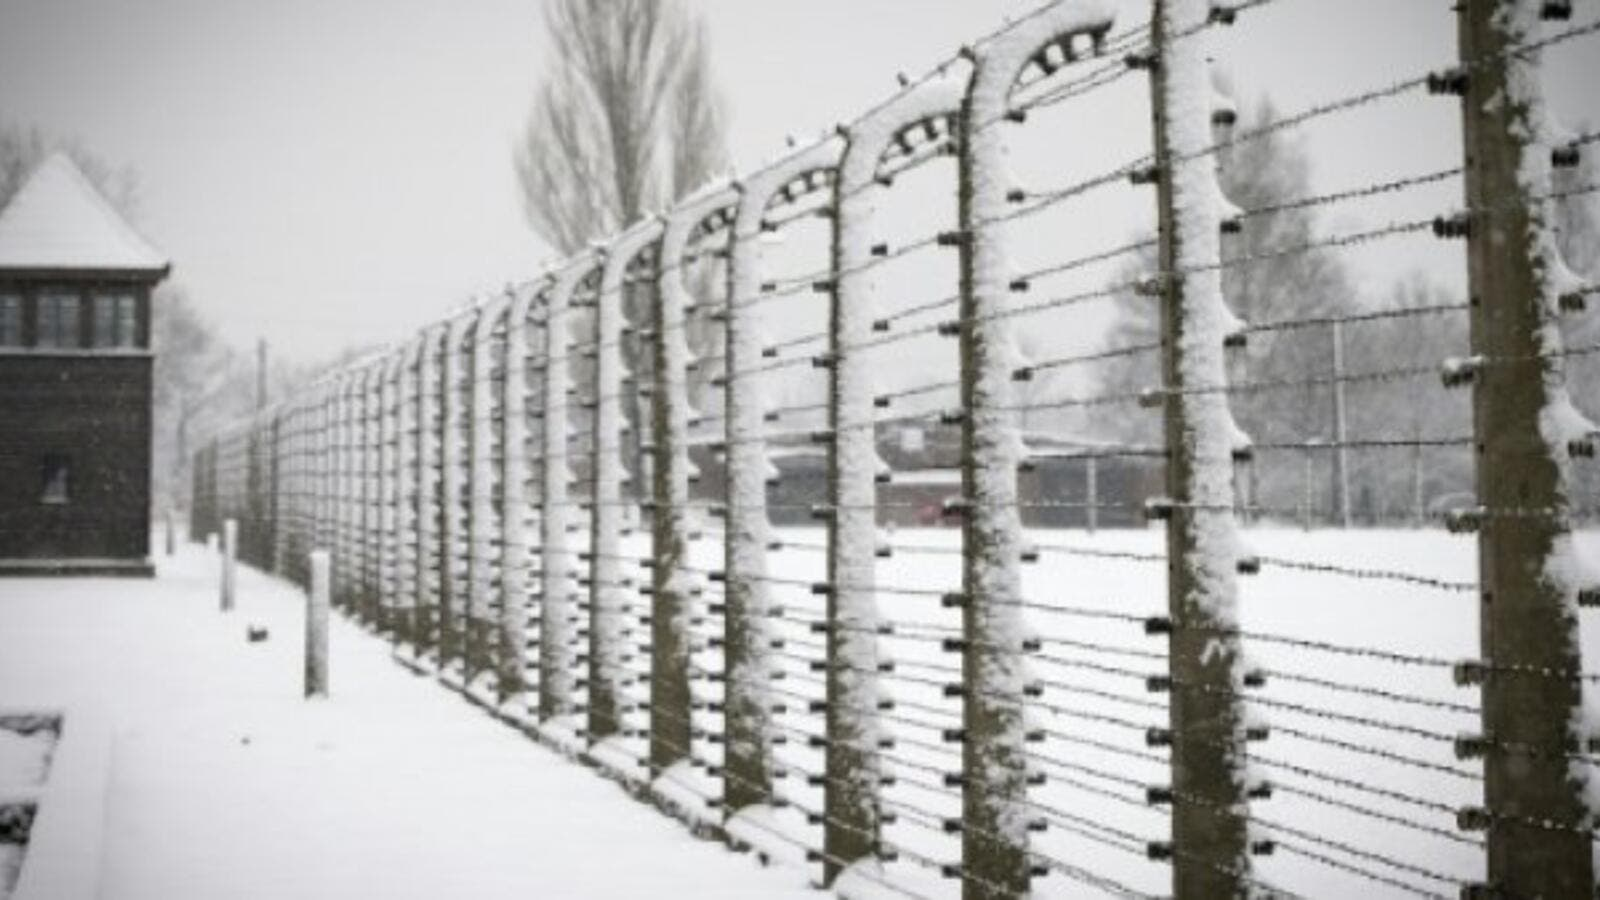 The Auschwitz concentration camp was a network of concentration and extermination camps built and operated by Nazi Germany in occupied Poland. (AFP/File Photo)